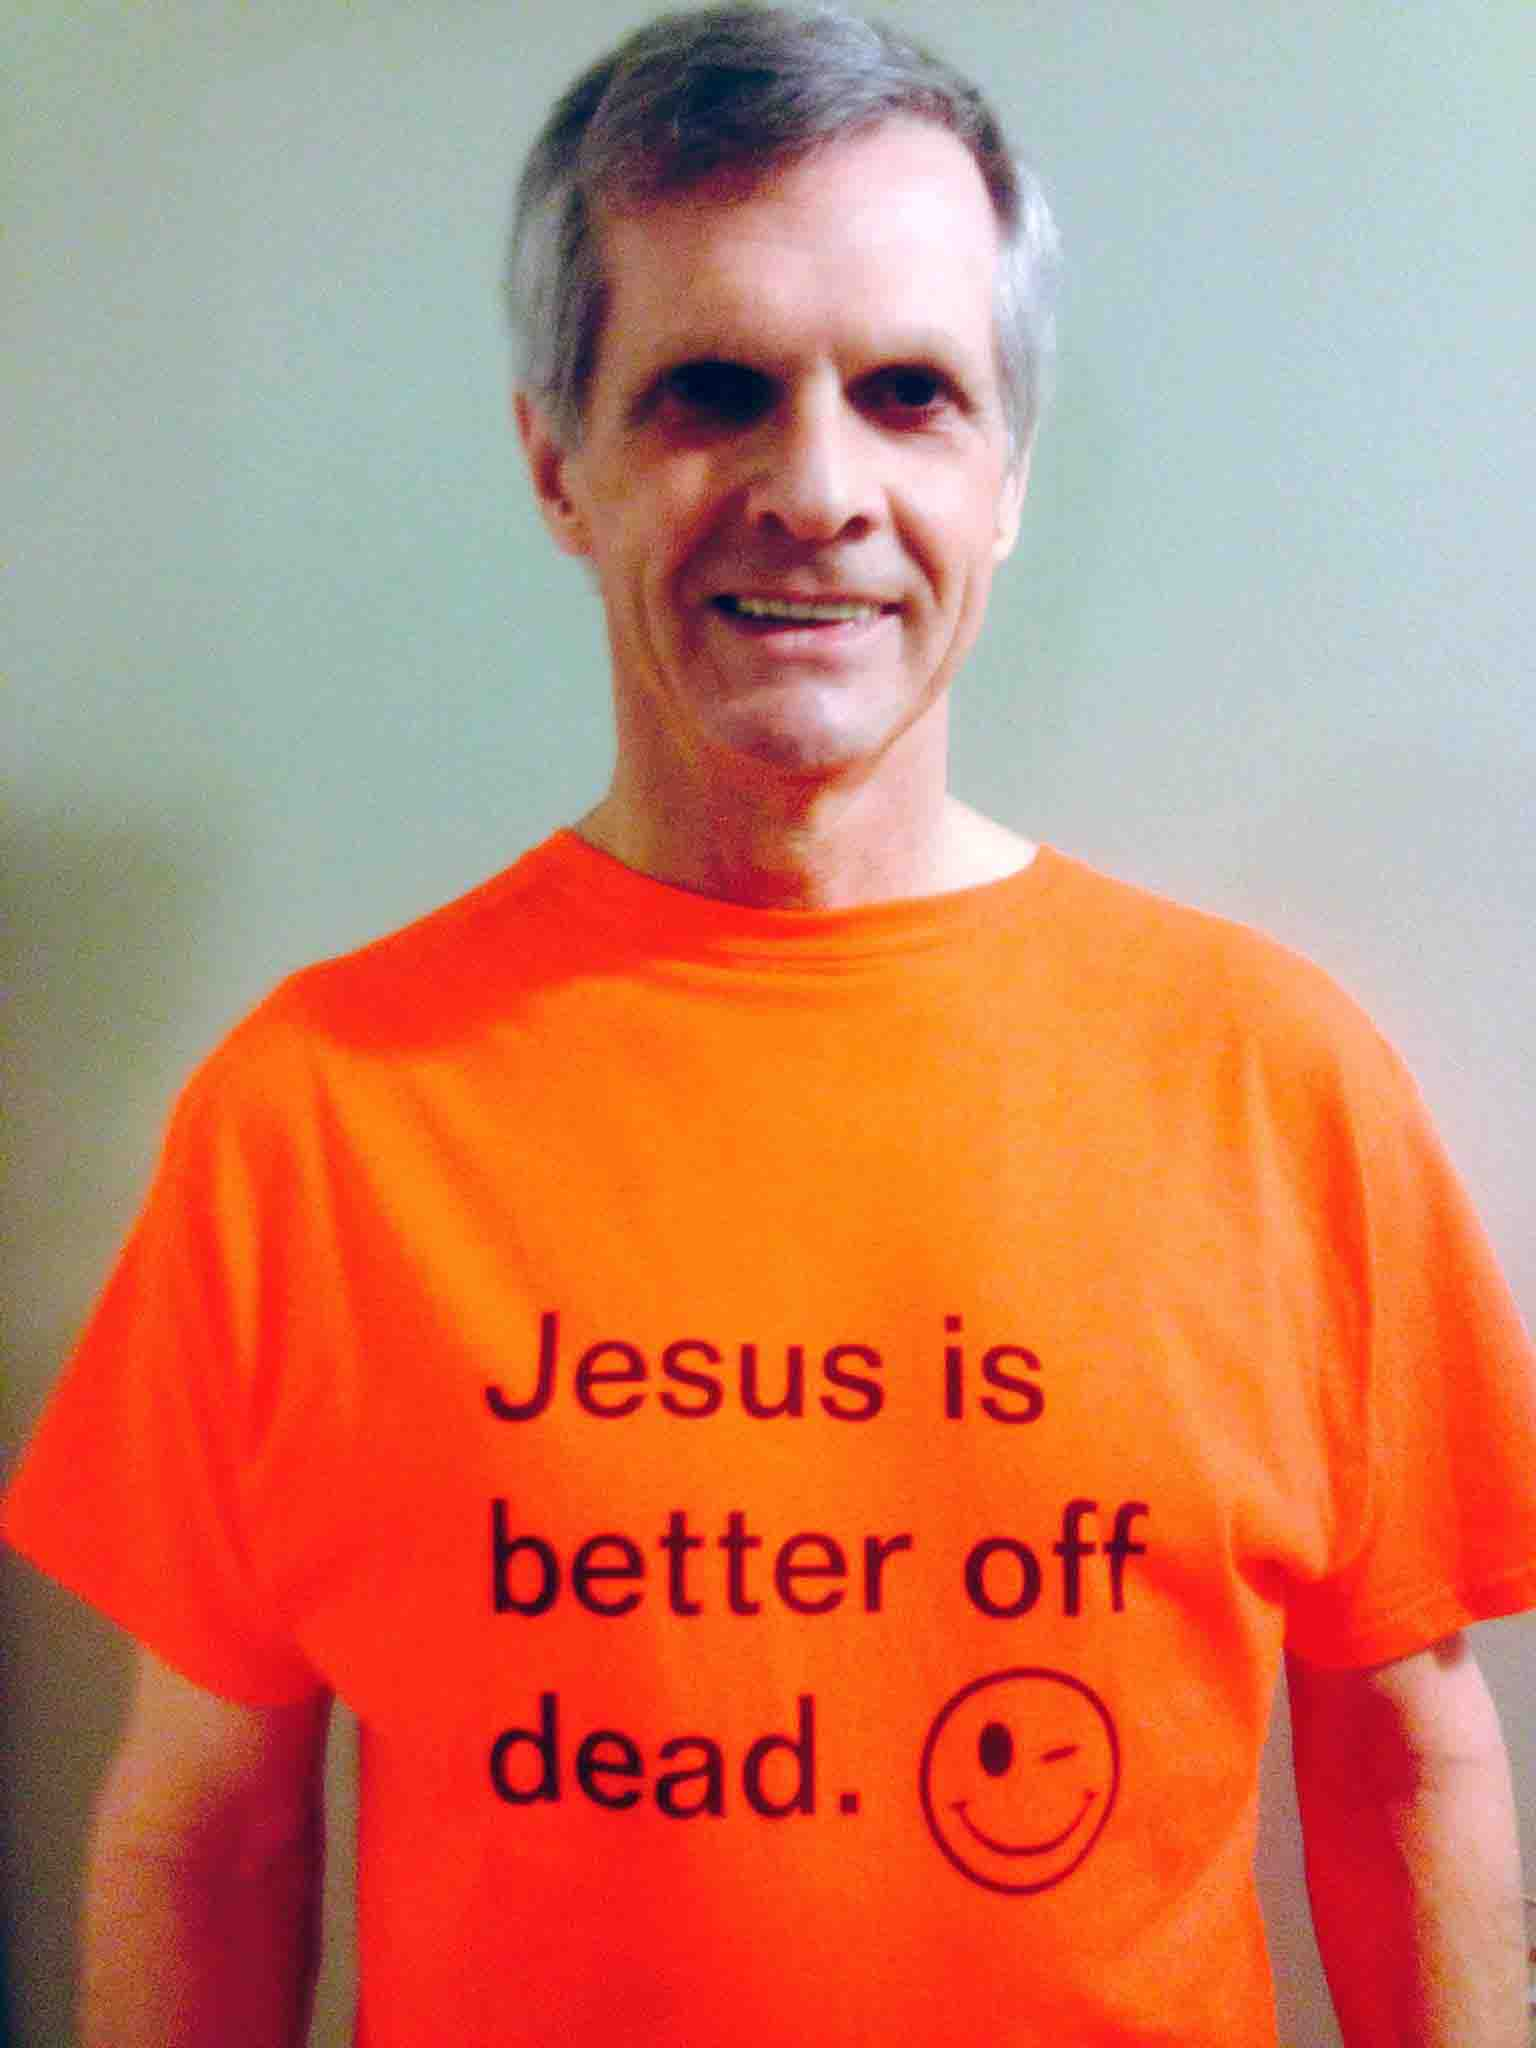 Darwin Bedford wearing his shirt that says 'Jesus is better off dead'